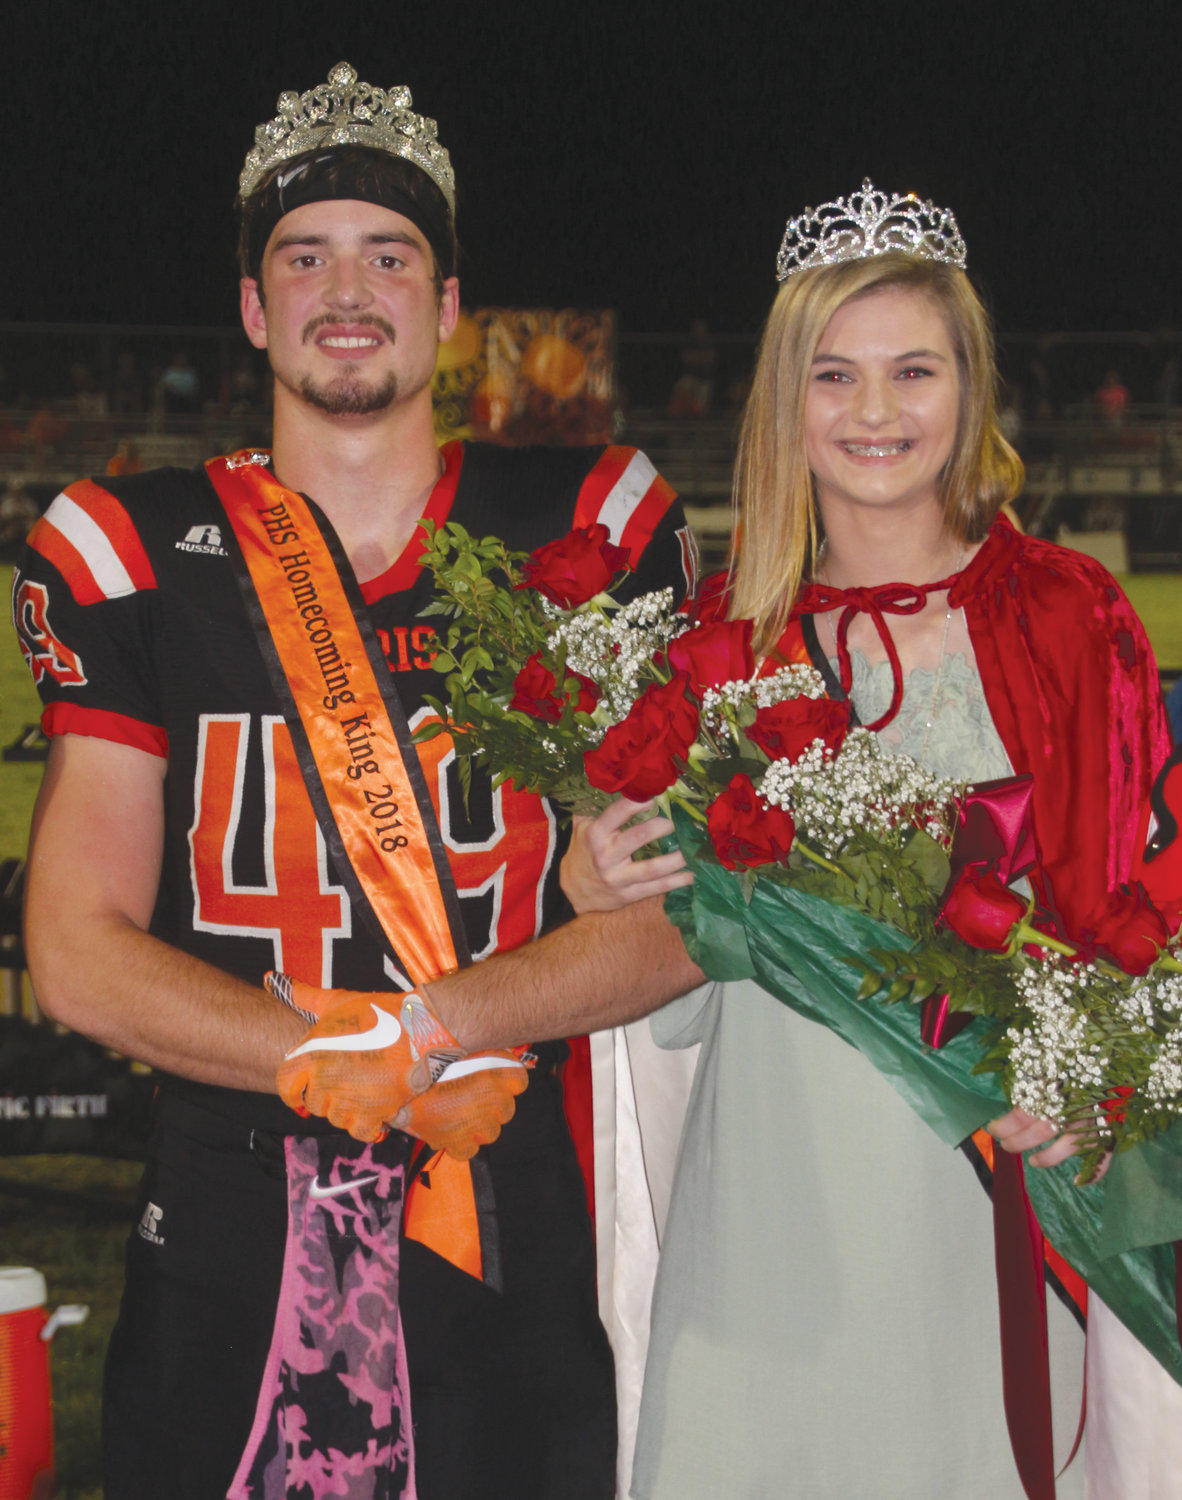 Crowned king and queen of the 2018 Paris High School homecoming celebration were seniors Cooper Block and Brooklyn Westerfield. They will reign over Saturday's annual homecoming dance, climaxing a week of activity that included class games, lunch on the lawn and Power Puff games.